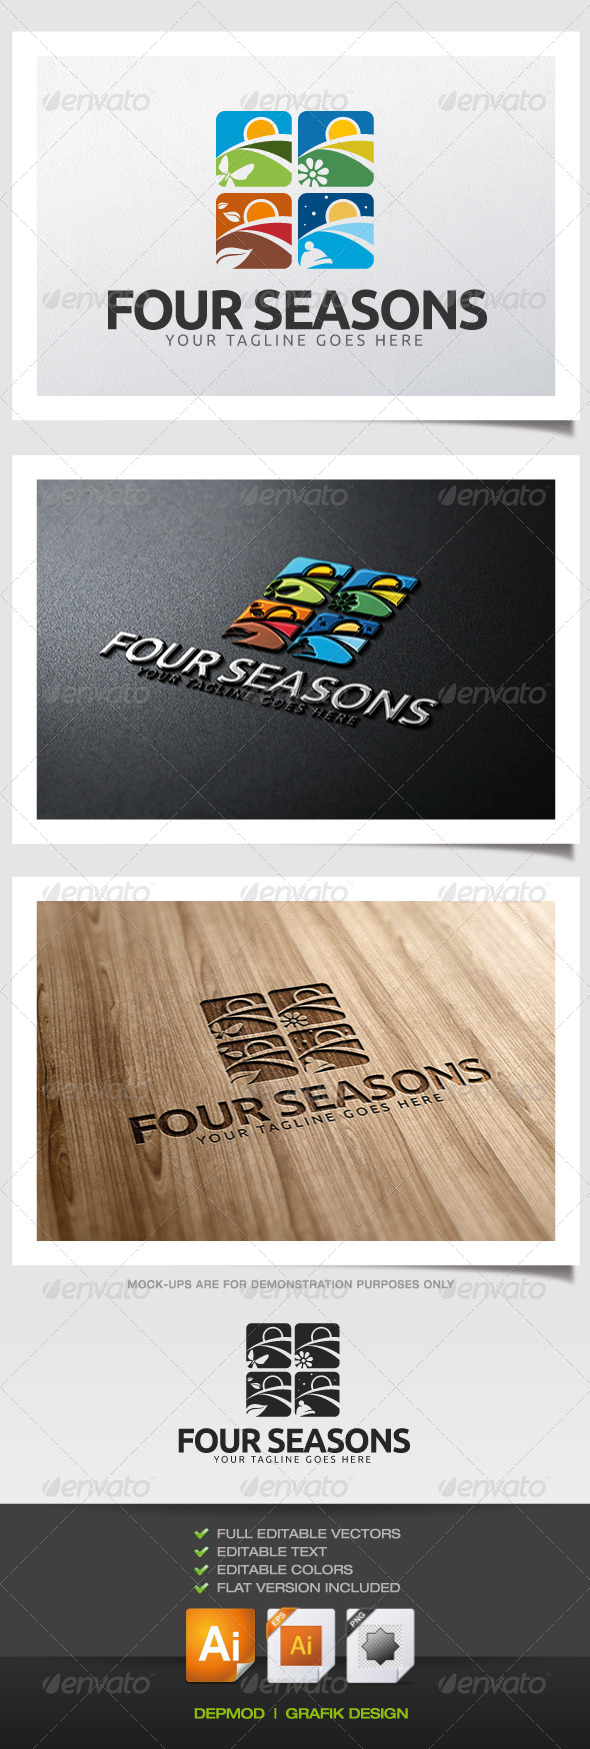 Four Seasons Logo - Nature Logo Templates